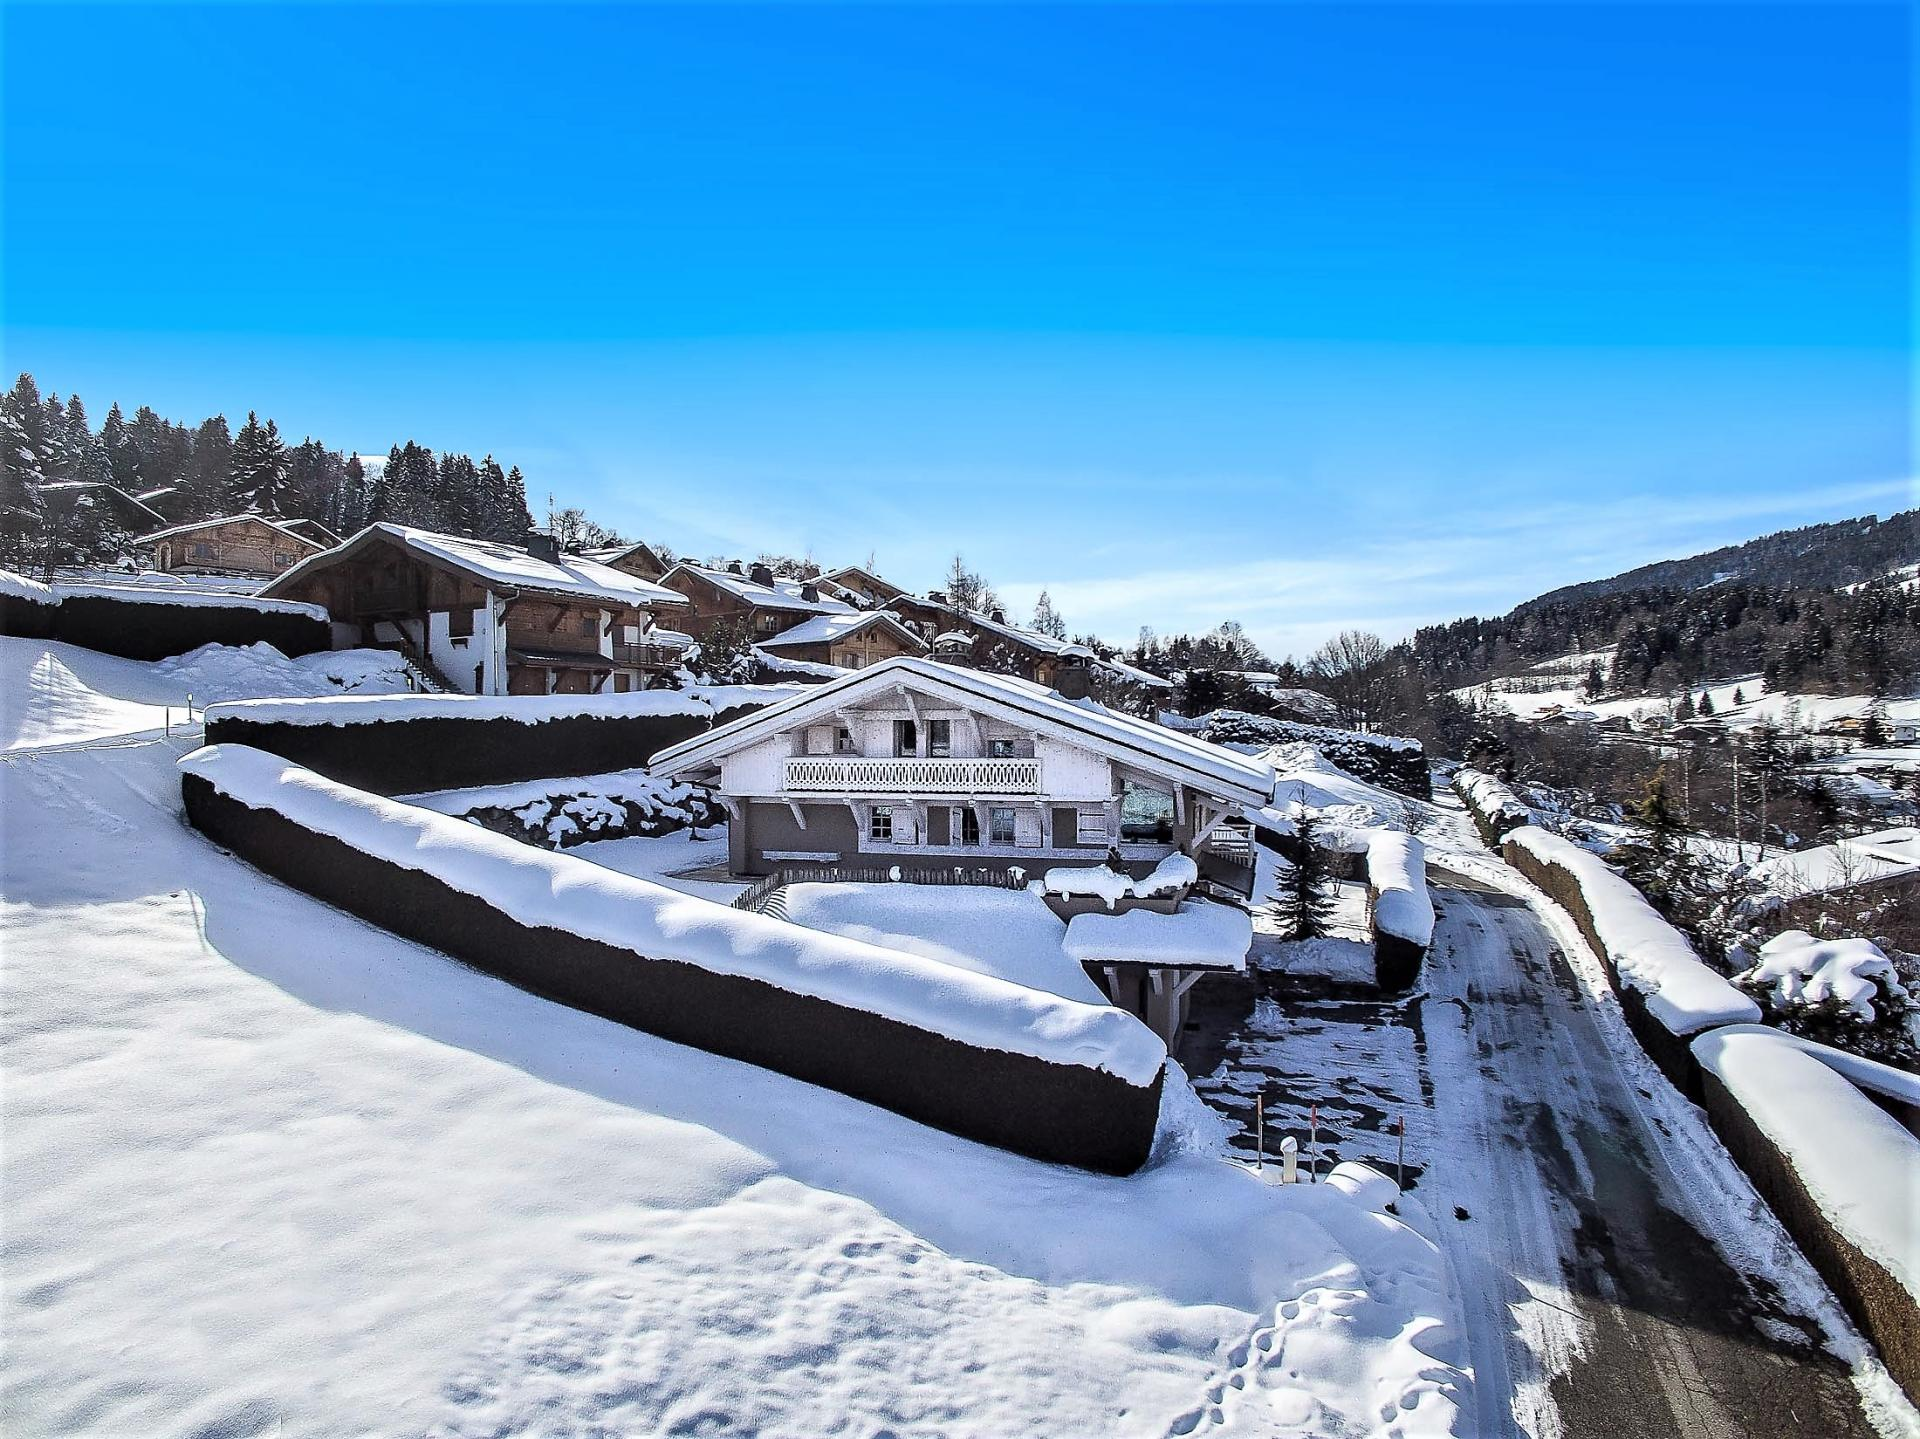 A NICE SKI HOLIDAY CHALET TO RENT IN MEGEVE